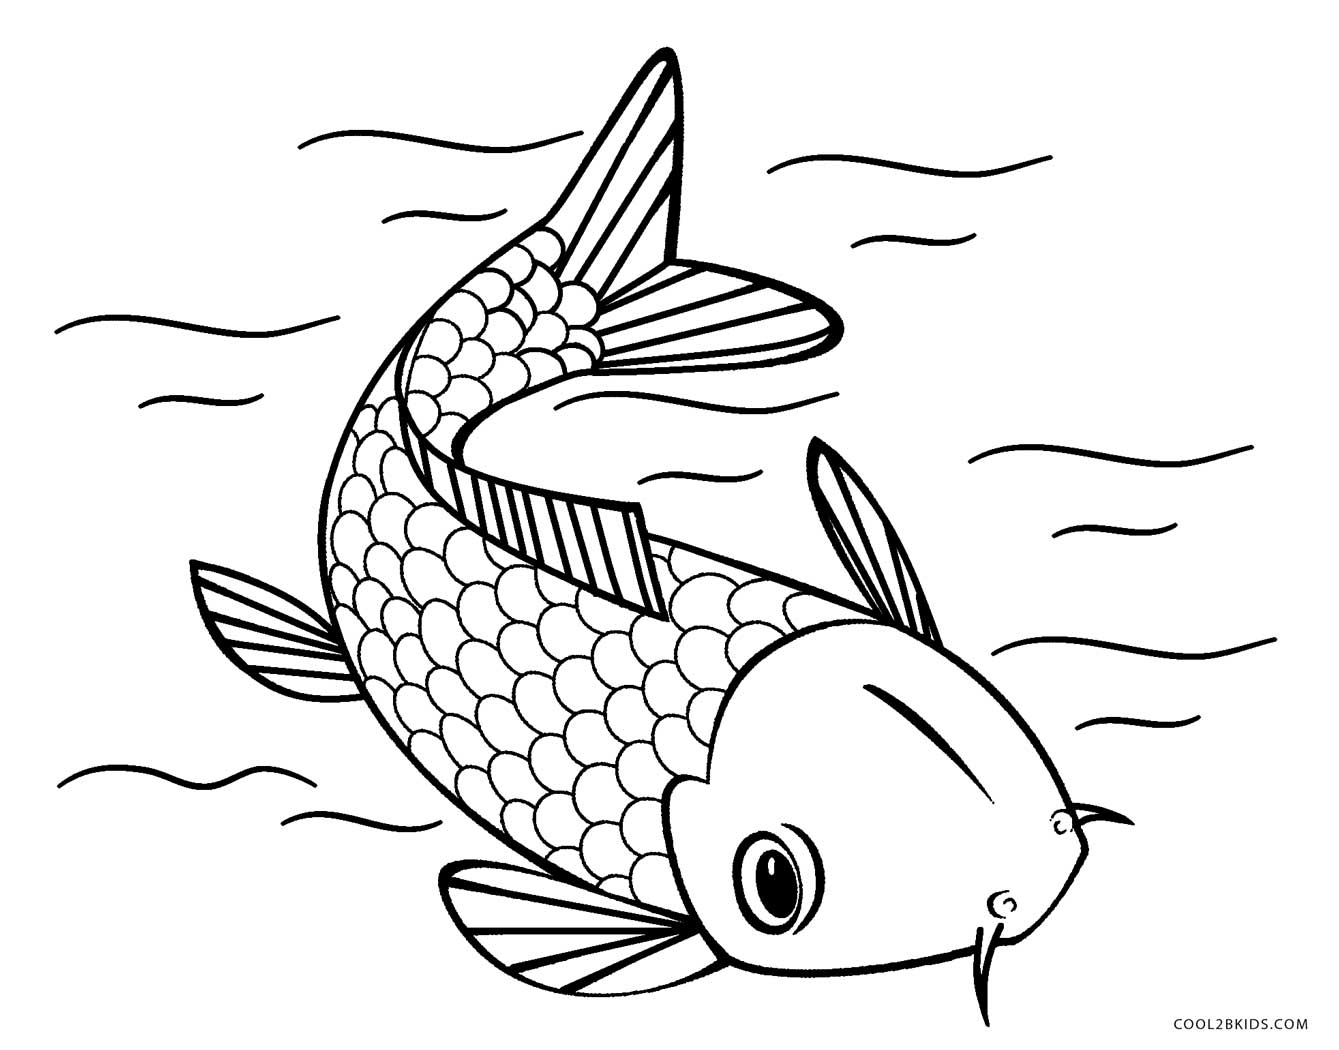 1339x1050 Japanese Koi Coloring Pages Download And Print For Free Adult Fish